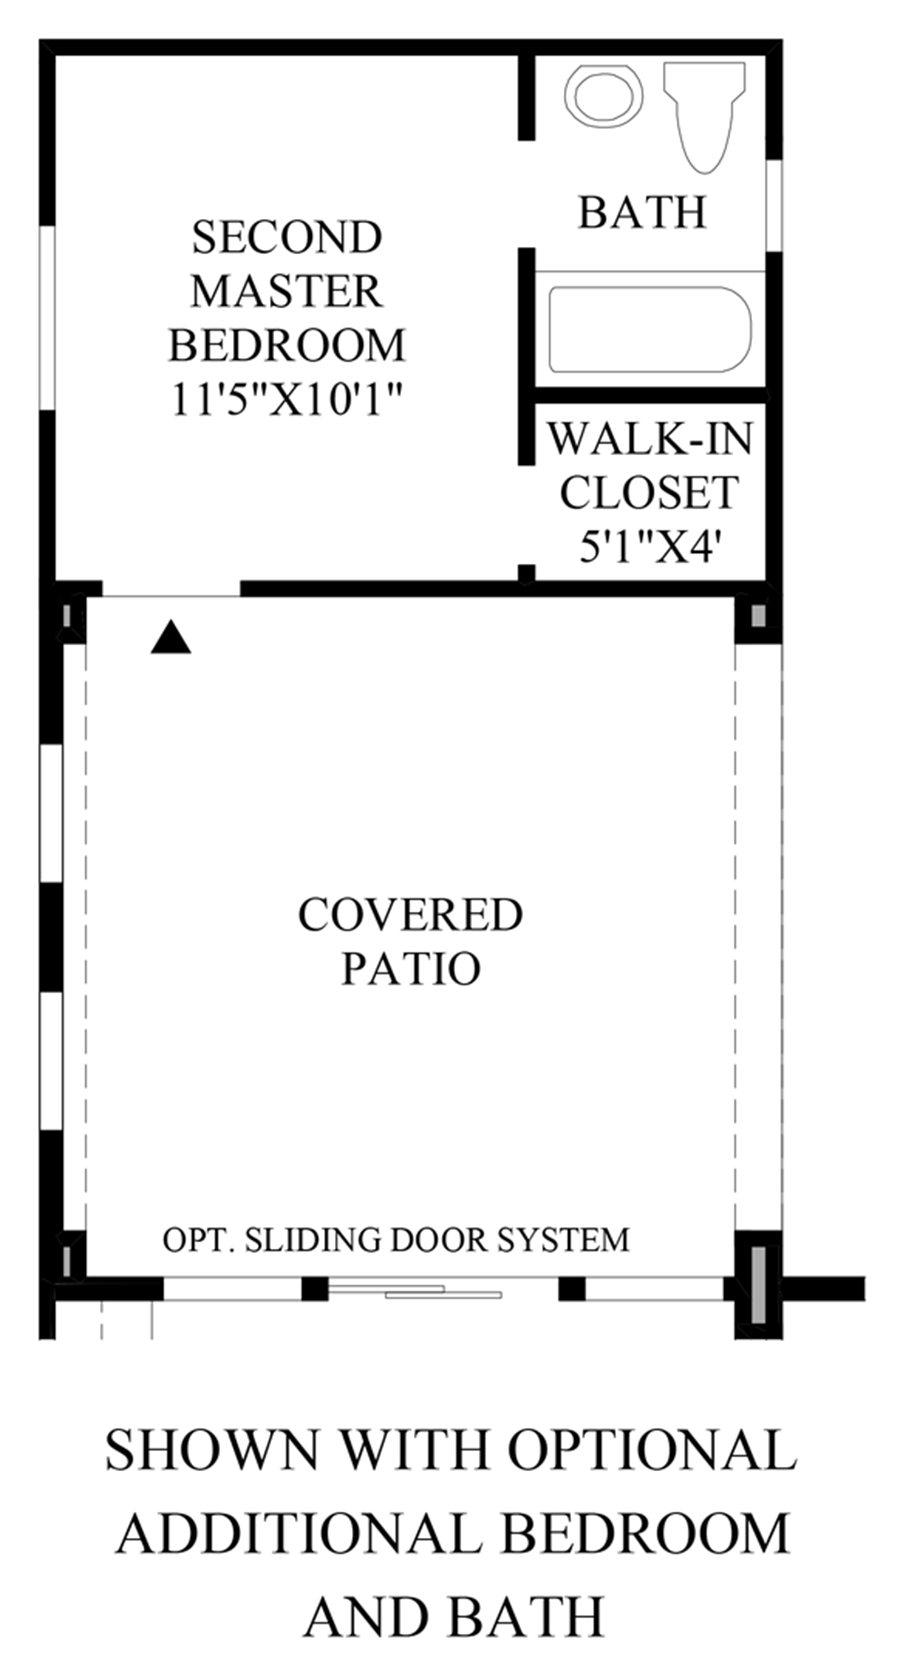 Optional Additional Bedroom & Bath Floor Plan